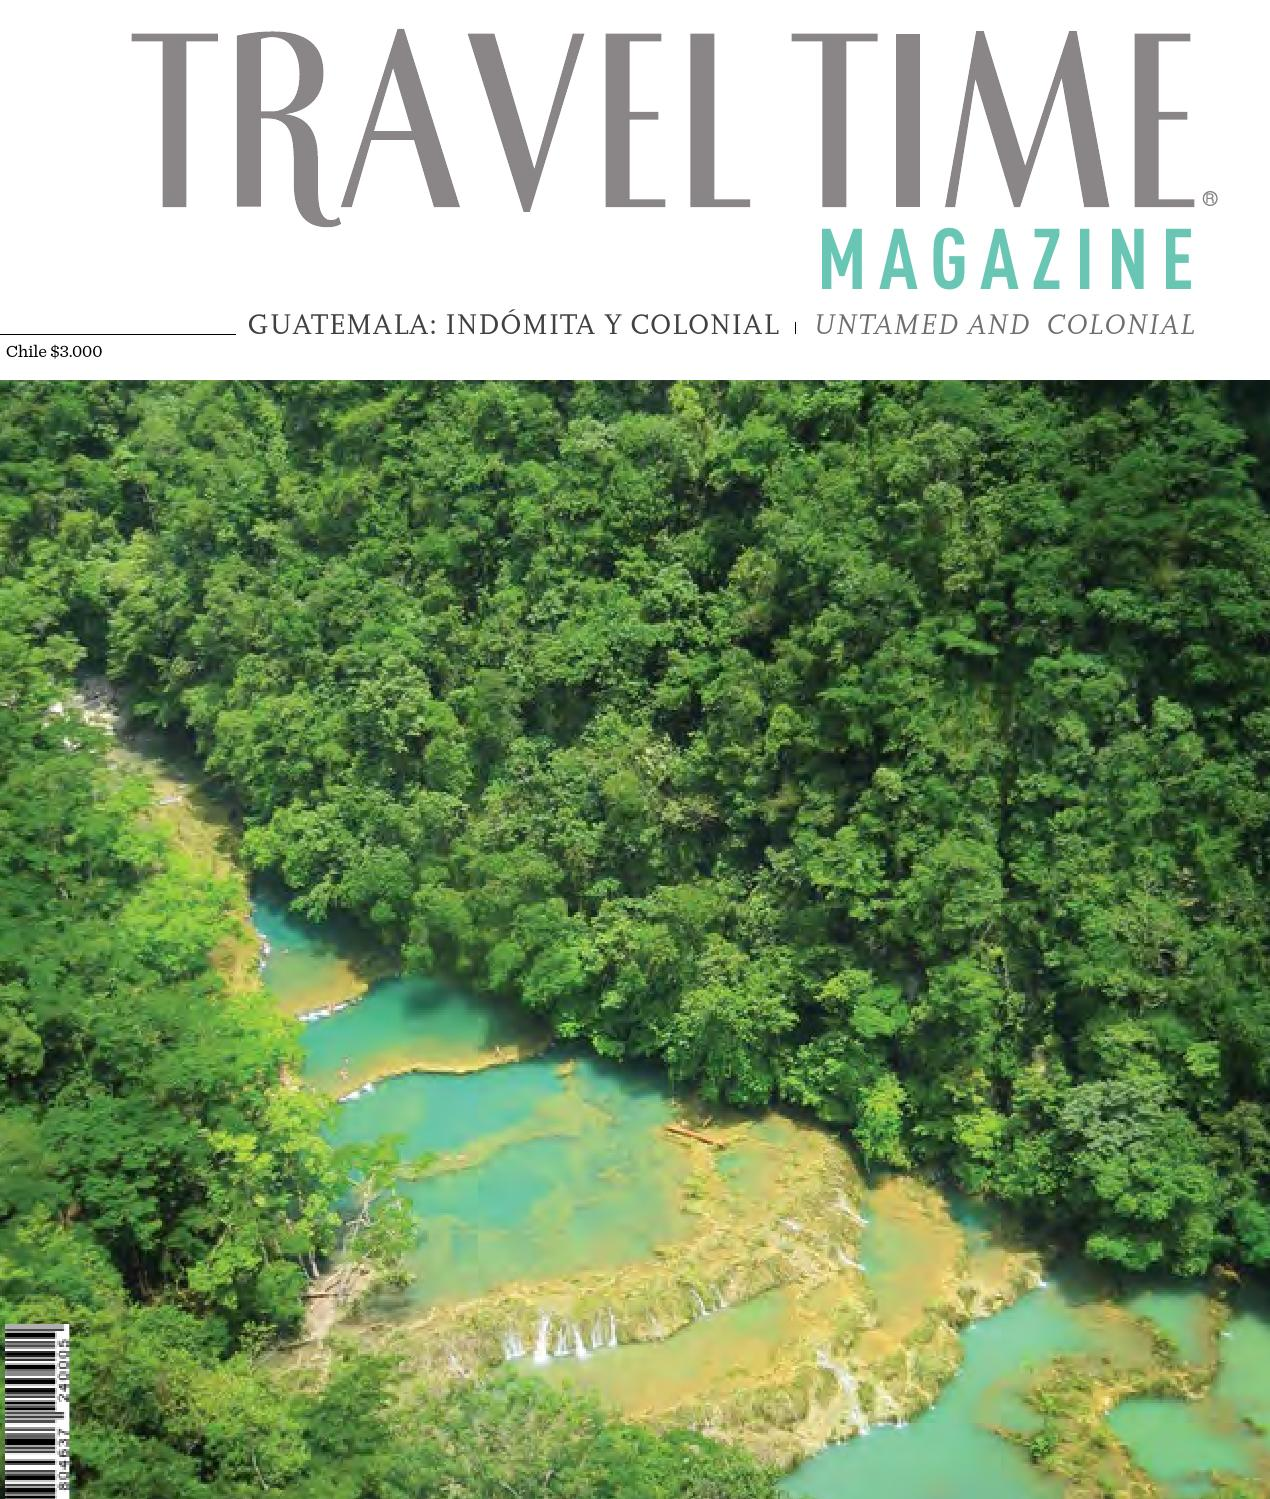 Traveltime 109 by Editorial Travel Time - issuu